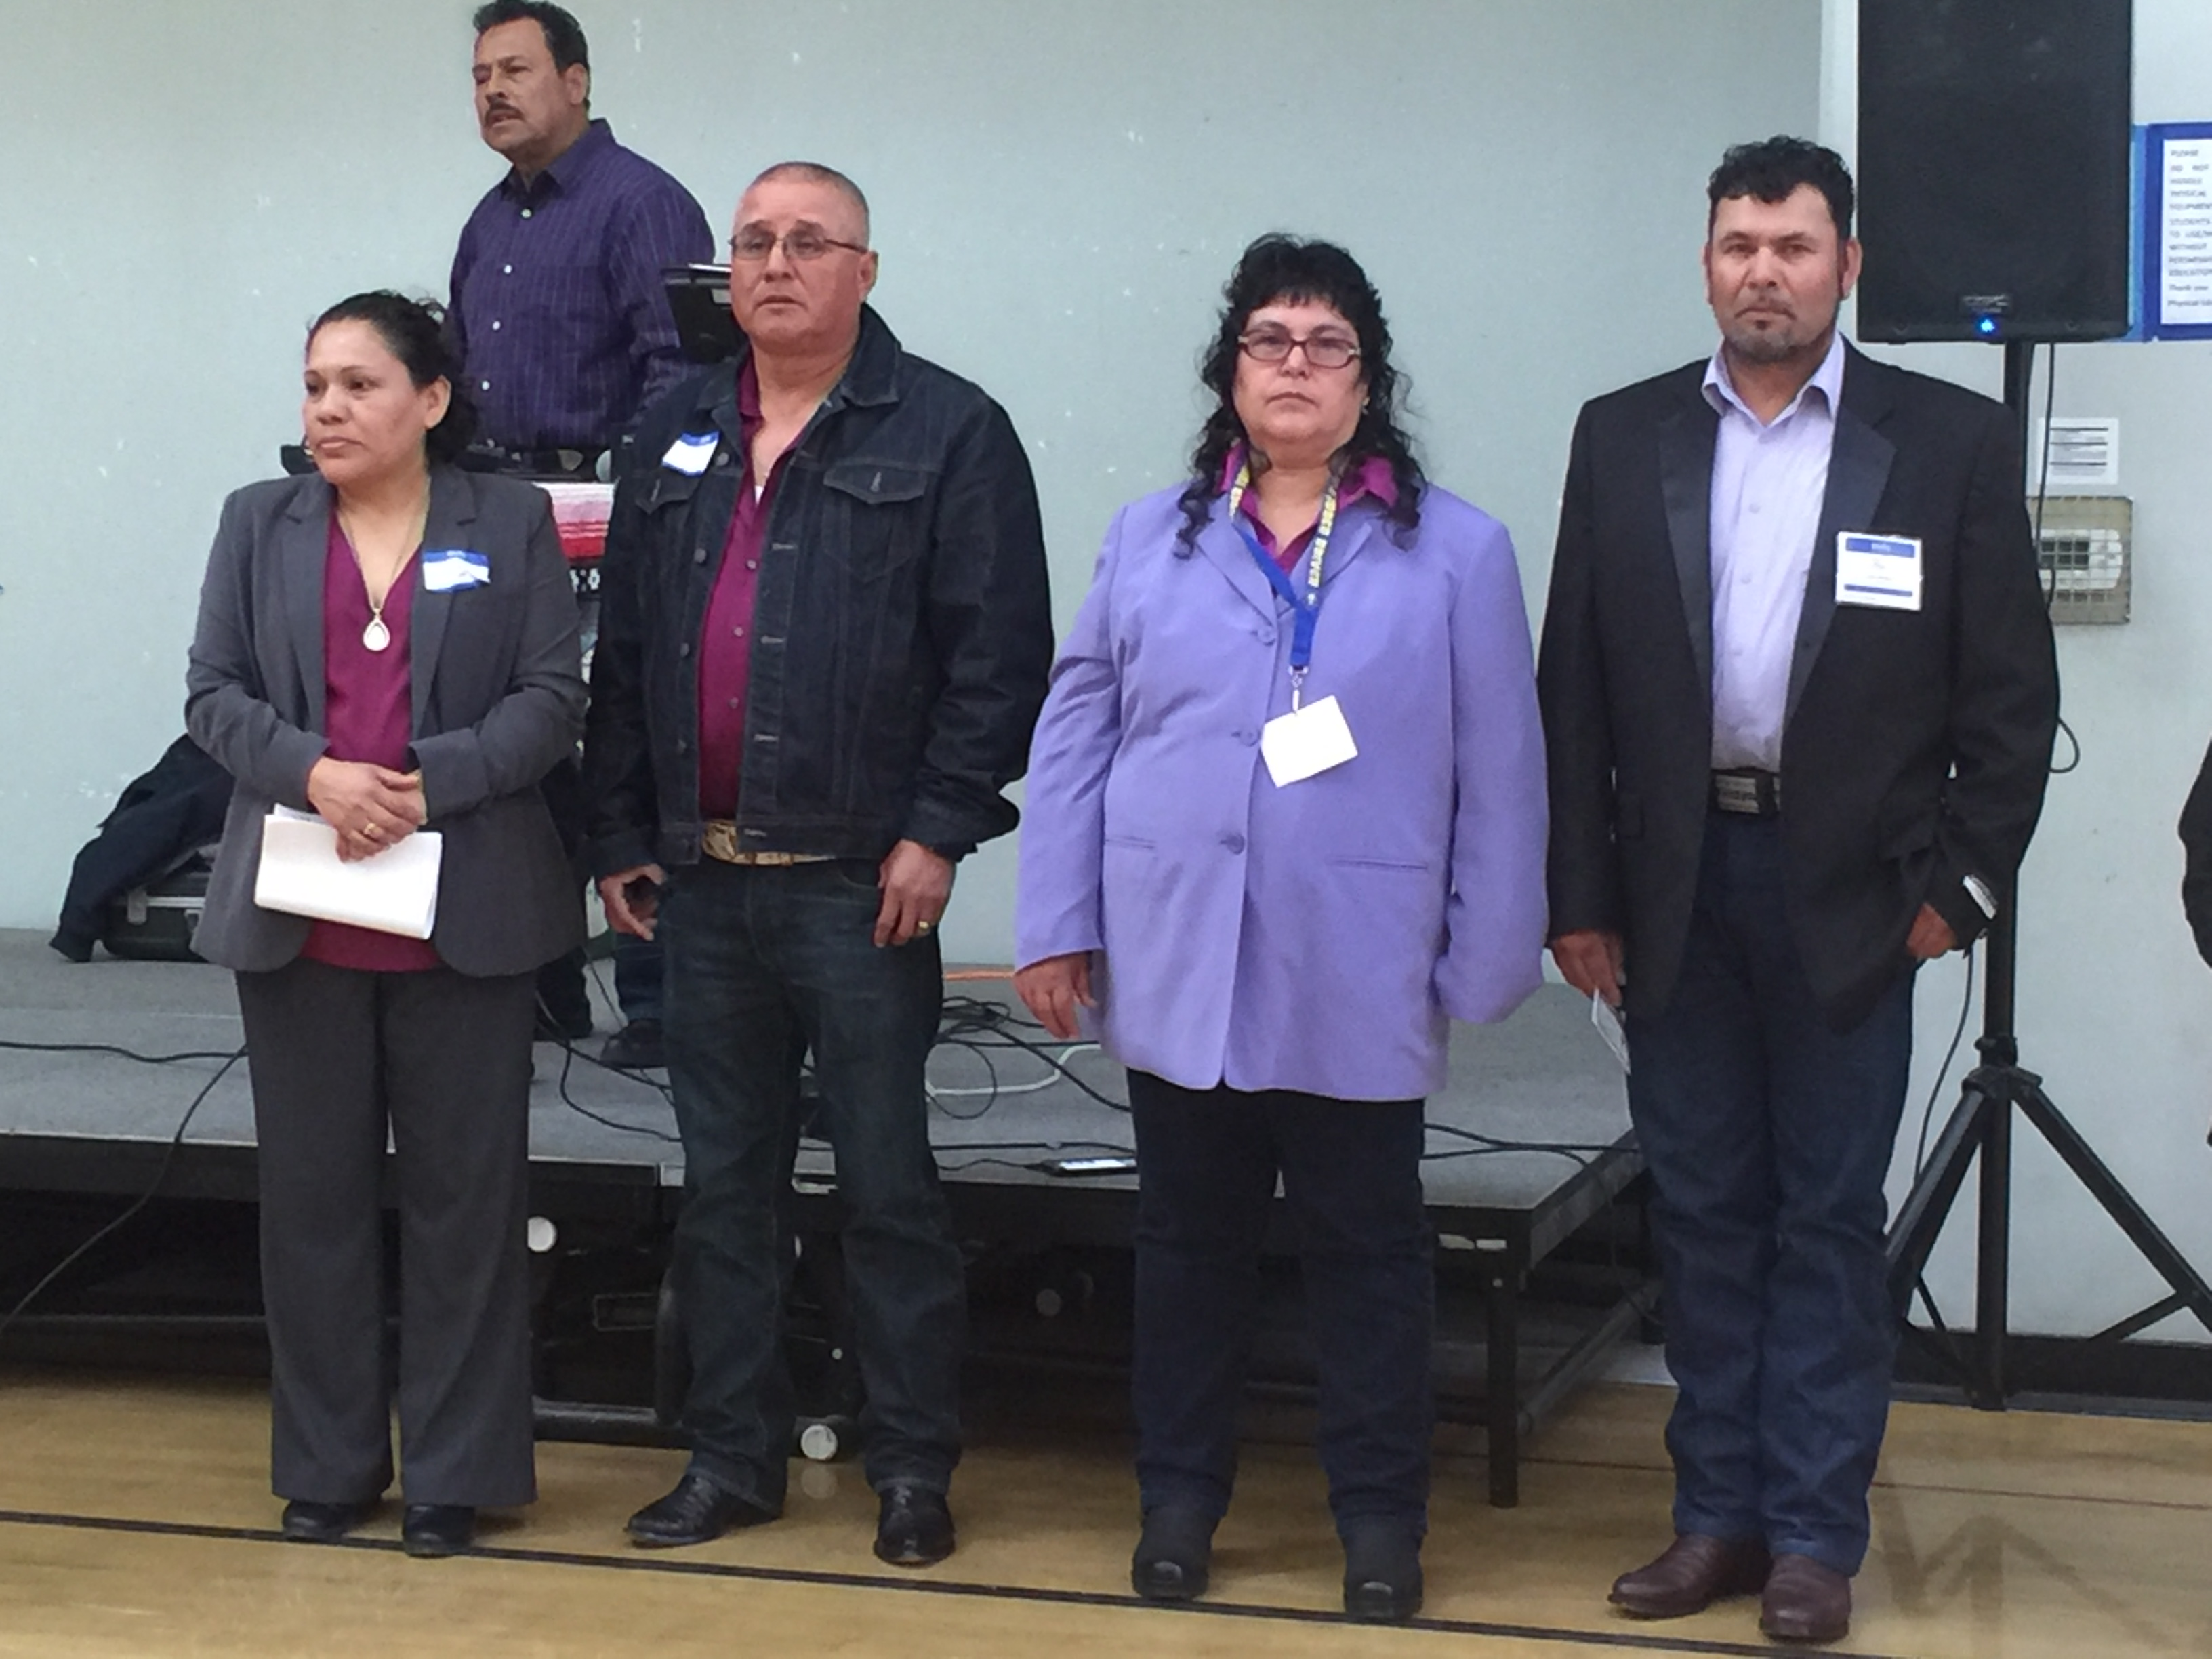 Parents who put on conference and who's kids we serve. From left to right Rosa, Jose, Rosie, & Leonel.